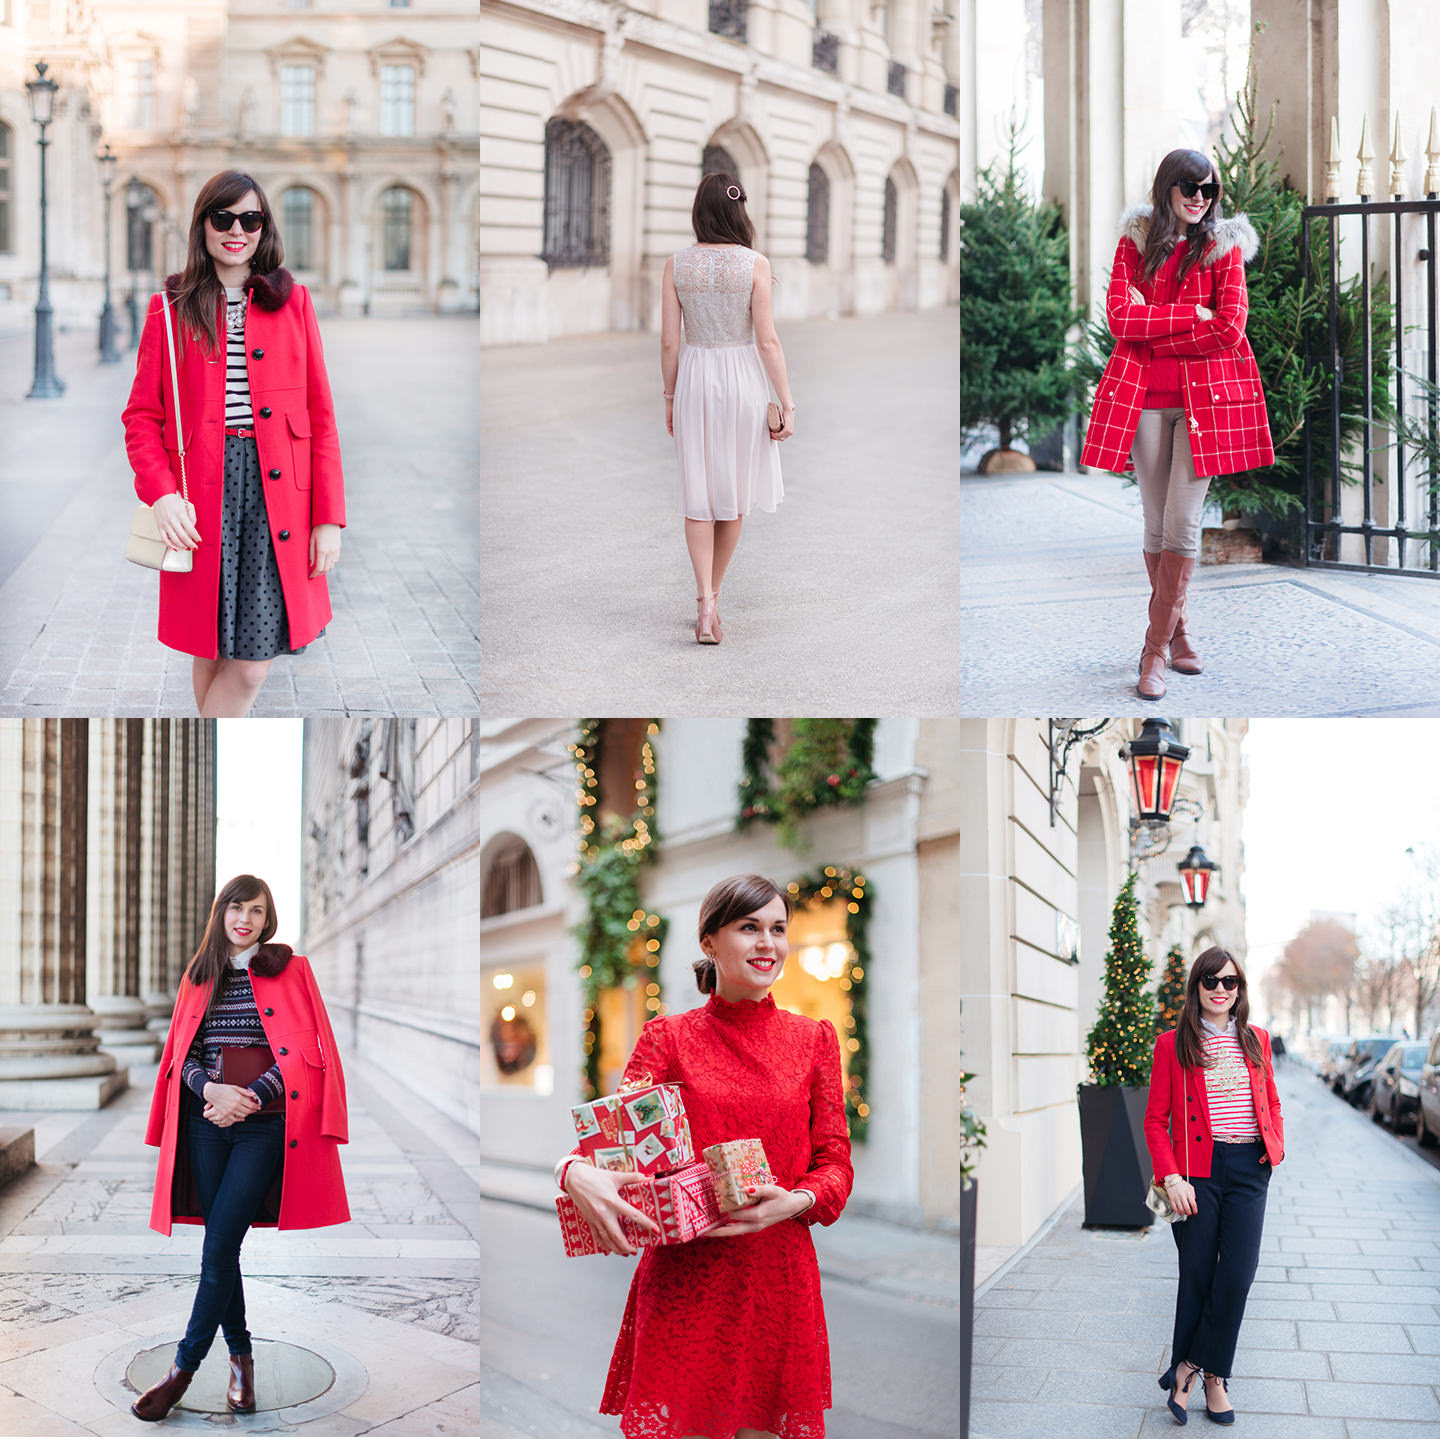 Blog-Mode-And-The-City-Looks-Best-Of-2016-Meilleurs-Looks-Decembre-2016